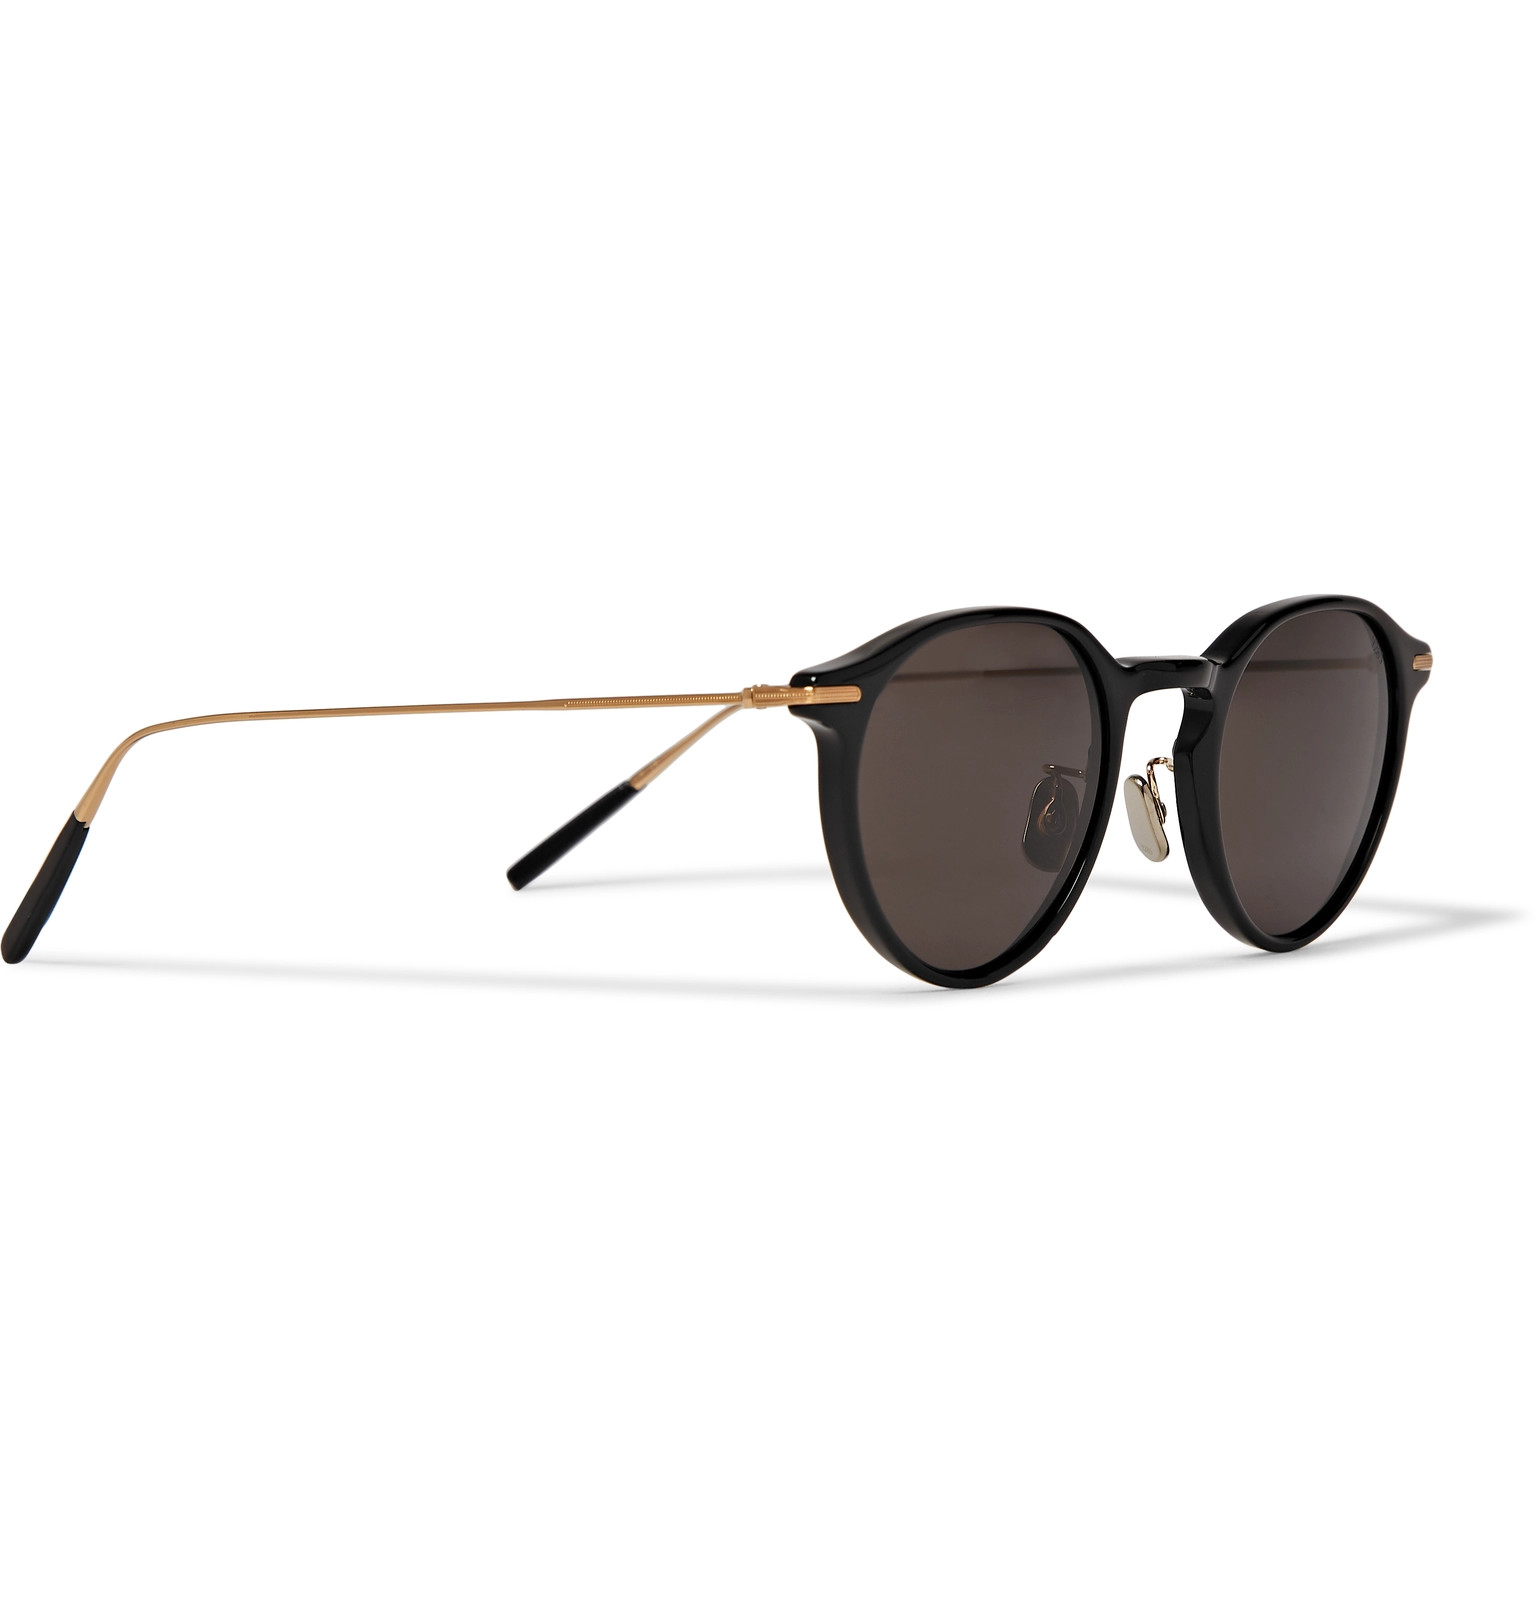 d59df2ca9e Eyevan 7285Round-Frame Acetate and Gold-Tone Sunglasses.  470. Tap to  Close. 1